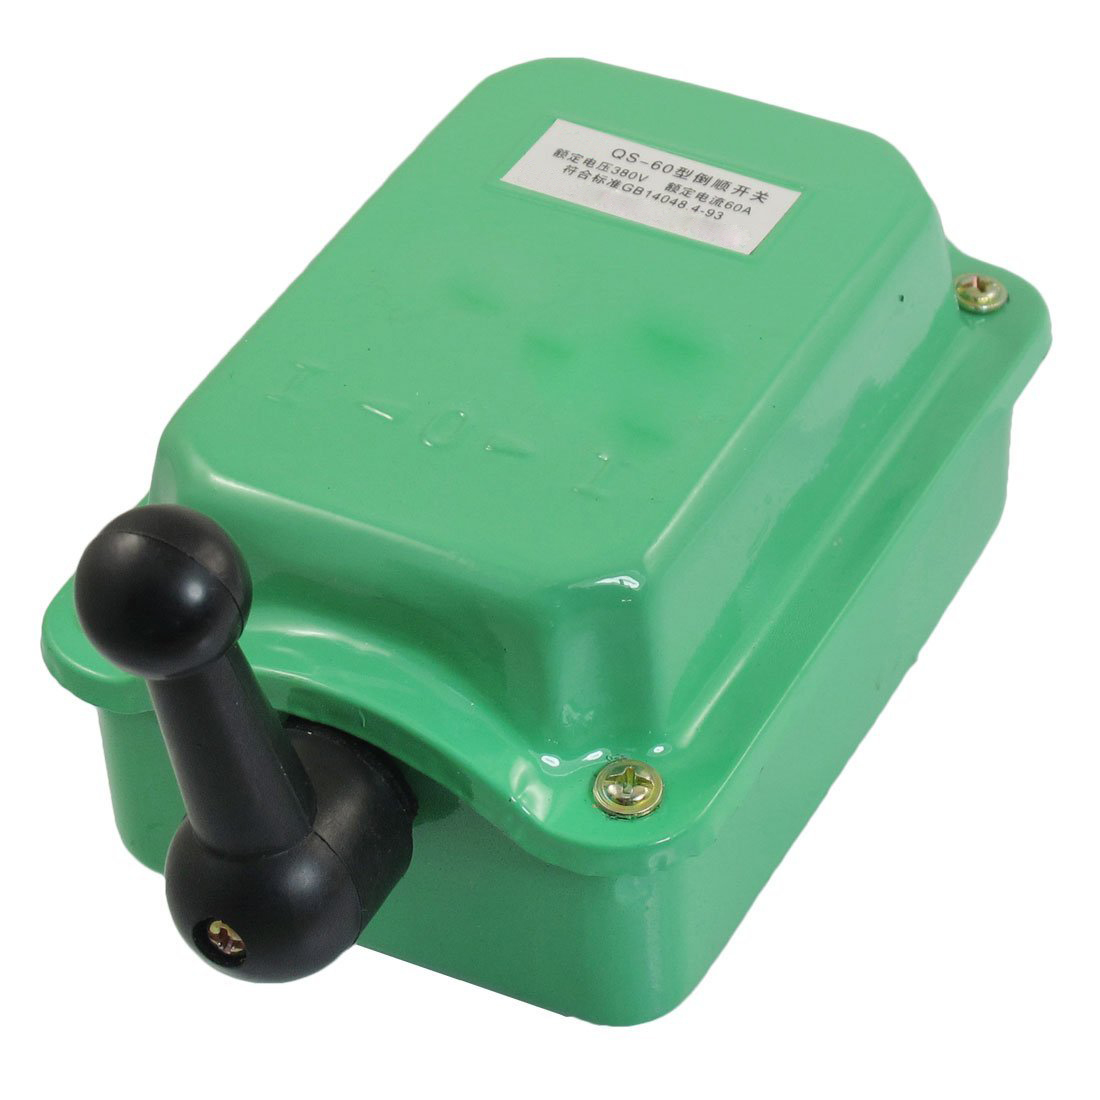 цена на High Quality AC 380V 60A Forward Stop Reverse Motor Cam Starter Changeover Switch QS-60 Green